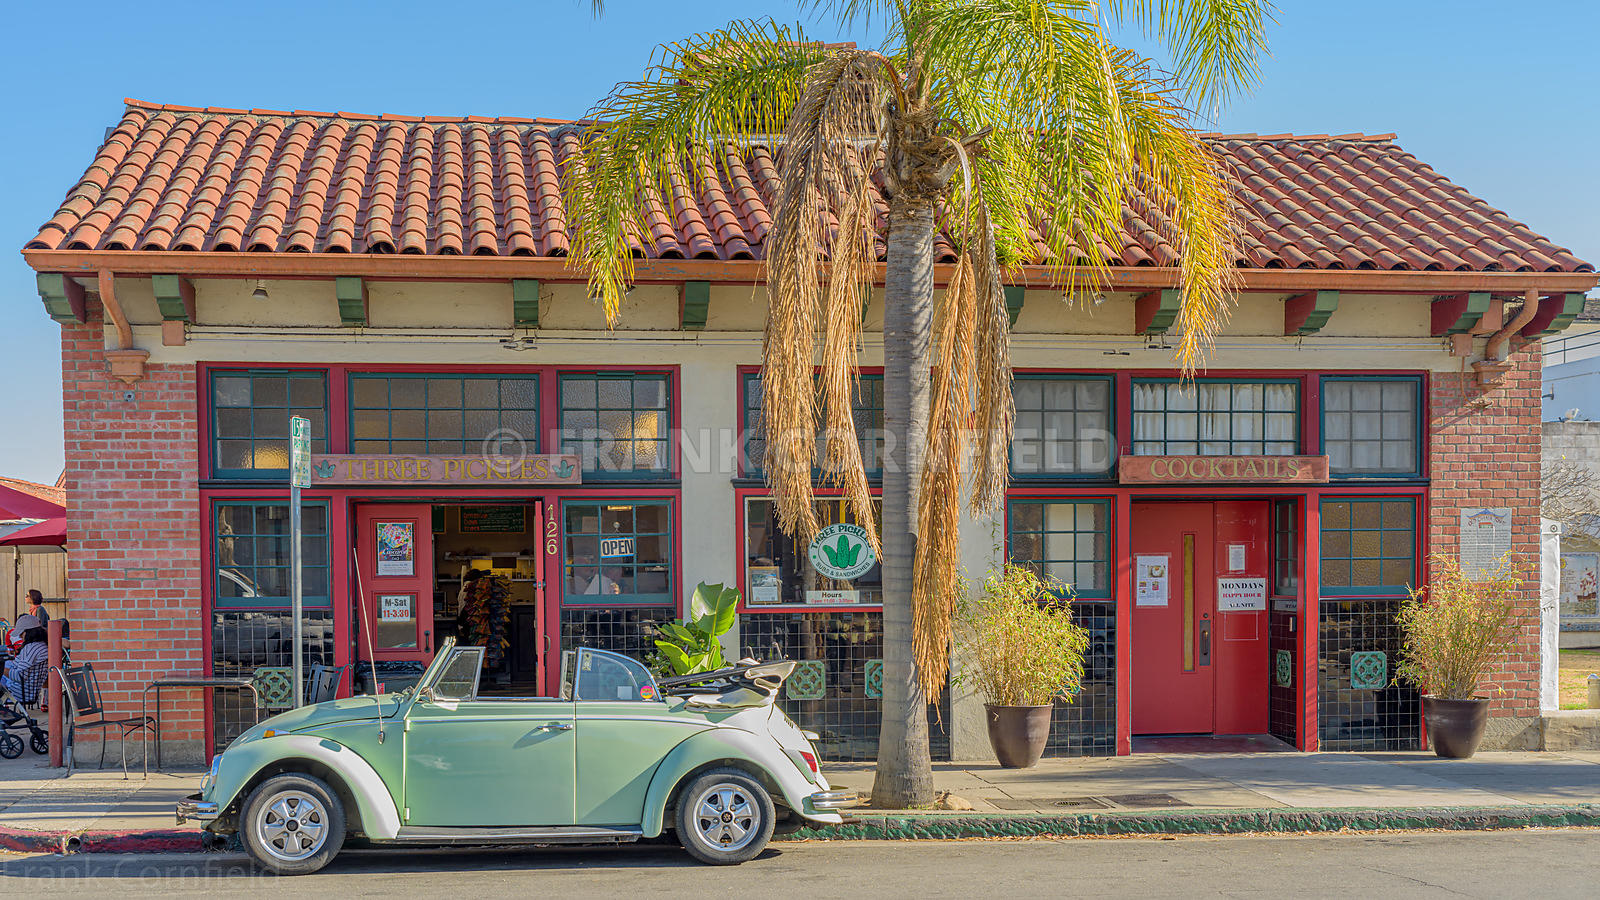 SANTA BARBARA, USA - FEBRUARY 07, 2018: The Three Pickles sandwich bar in Santa Barbara with a VW Beetle car parked outside.